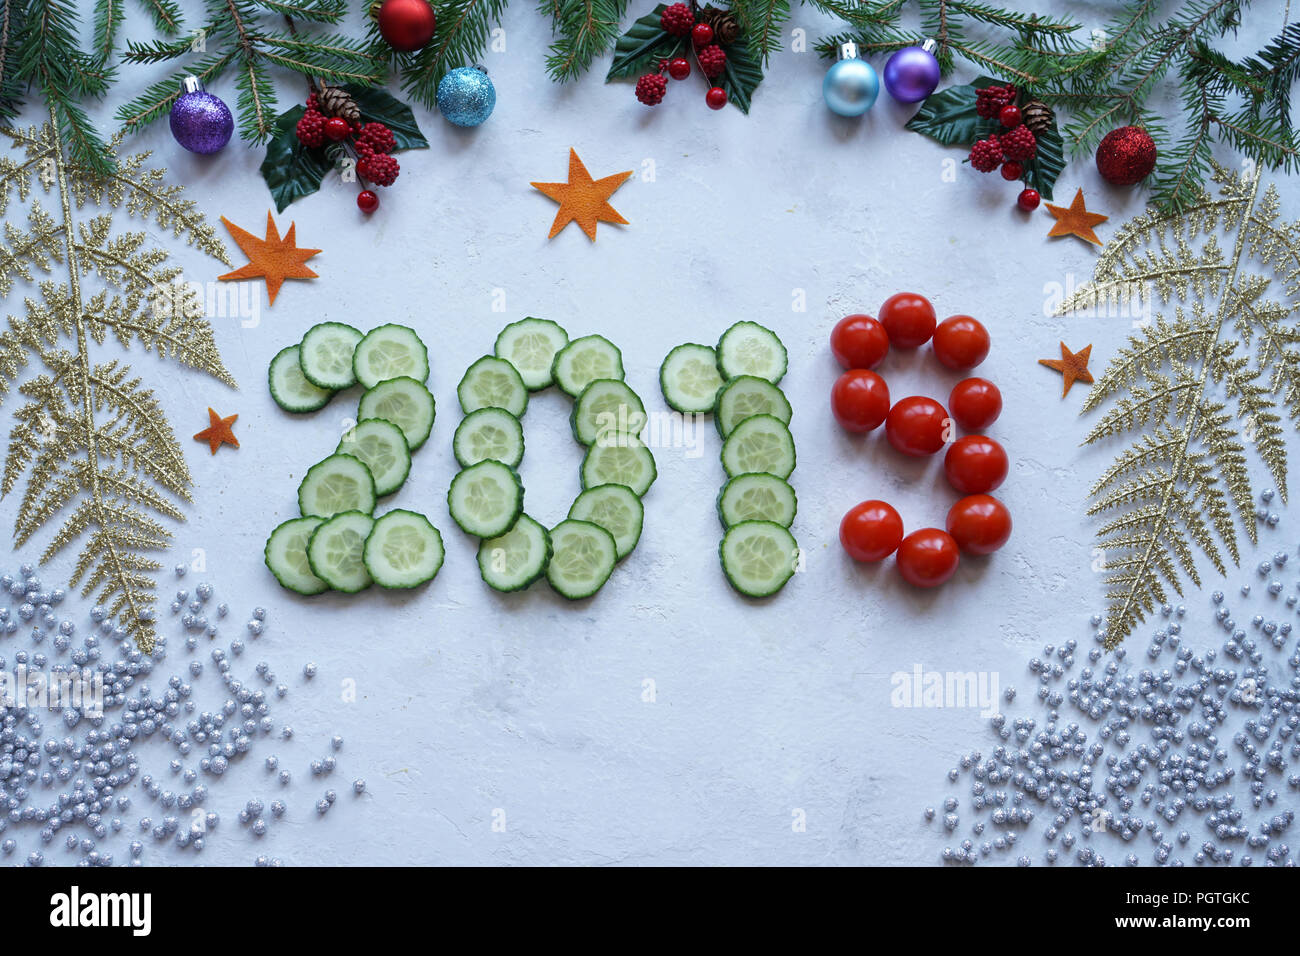 New Year's collage, healthy lifestyle, figures from cucumber and cherry tomatoes - Stock Image